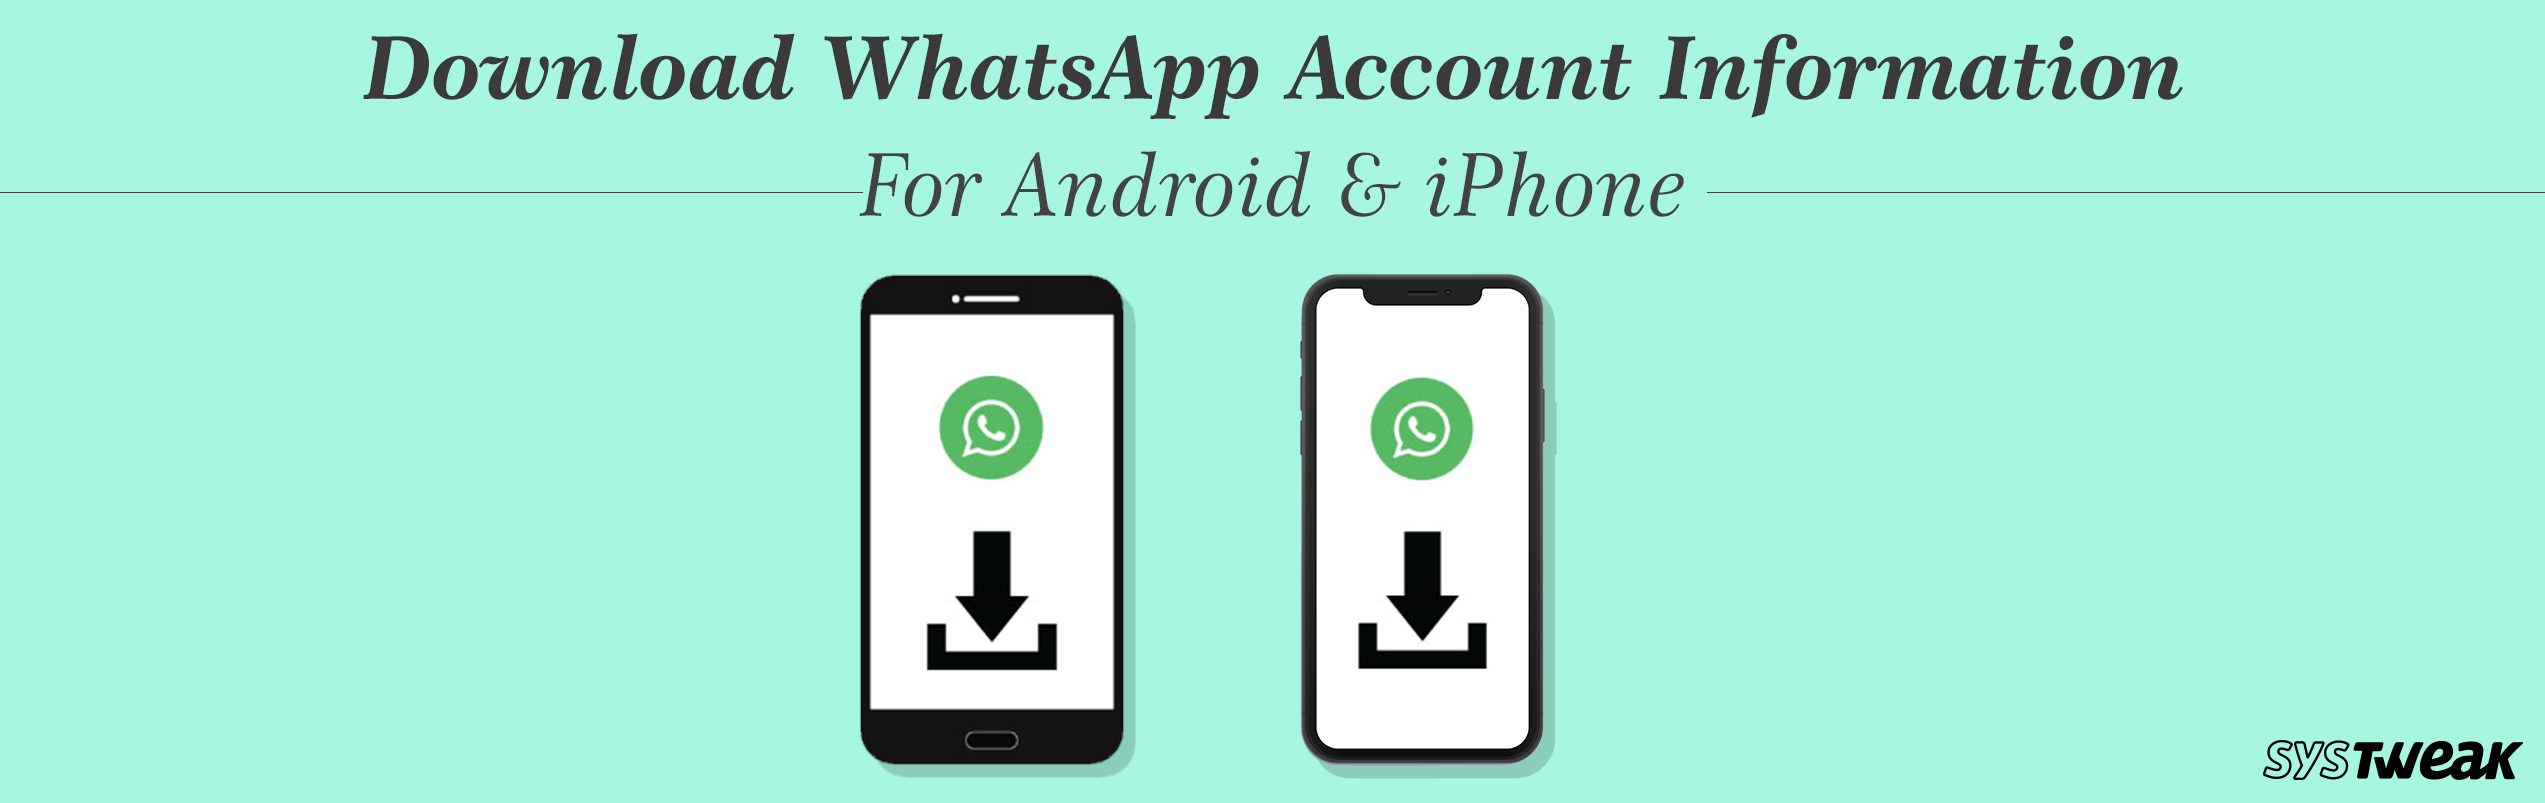 whatsapp download for android mobile phone